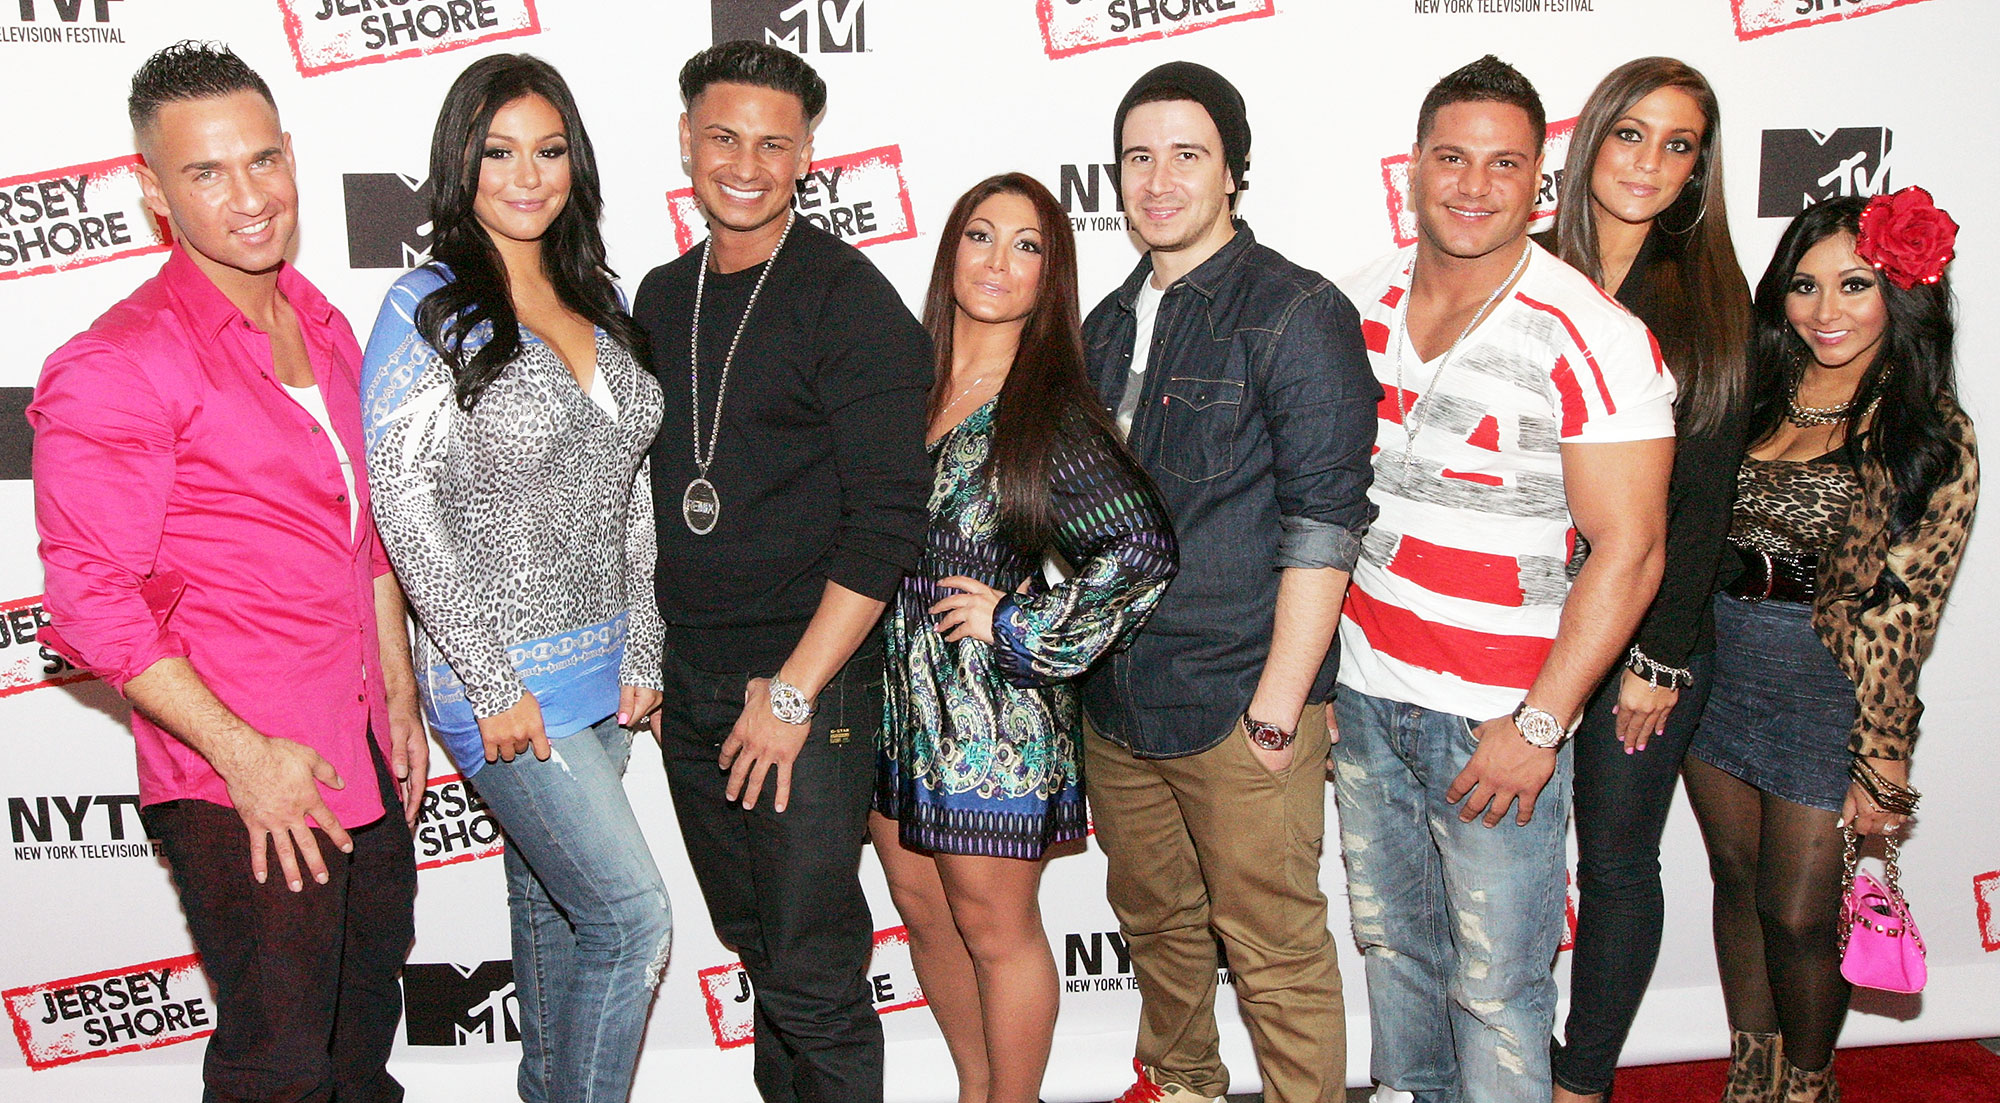 Pauly D Vinny Guadagnino Sammi Giancola Wedding Invite Jersey Shore Cast 2012 - Mike 'The Situation' Sorrentino, Jenni 'JWOWW' Farley, Pauly D, Deena Cortese, Vinny Guadagnino, Ronnie Ortiz-Magro, Sammi Giancola and Nicole 'Snooki' Polizzi attend 'Love, Loss, (Gym, Tan) and Laundry: A Farewell To The Jersey Shore' on October 24, 2012 in New York City.